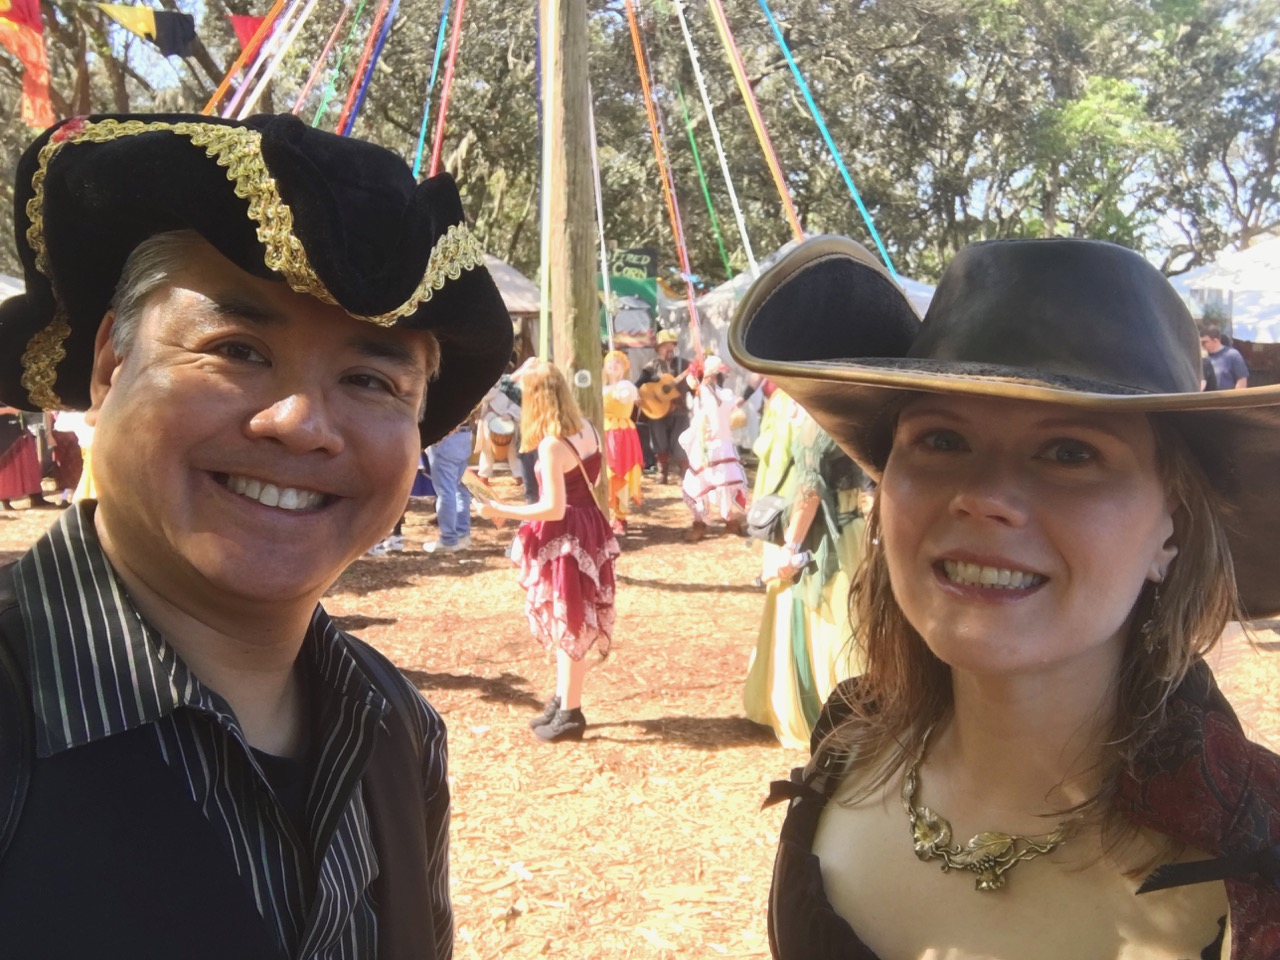 Joey deVilla and Anitra Pavka at Tampa's Bay Area Renaissance Festival in renaissance clothing, with a maypole and maypole dancers in the backgrounds.